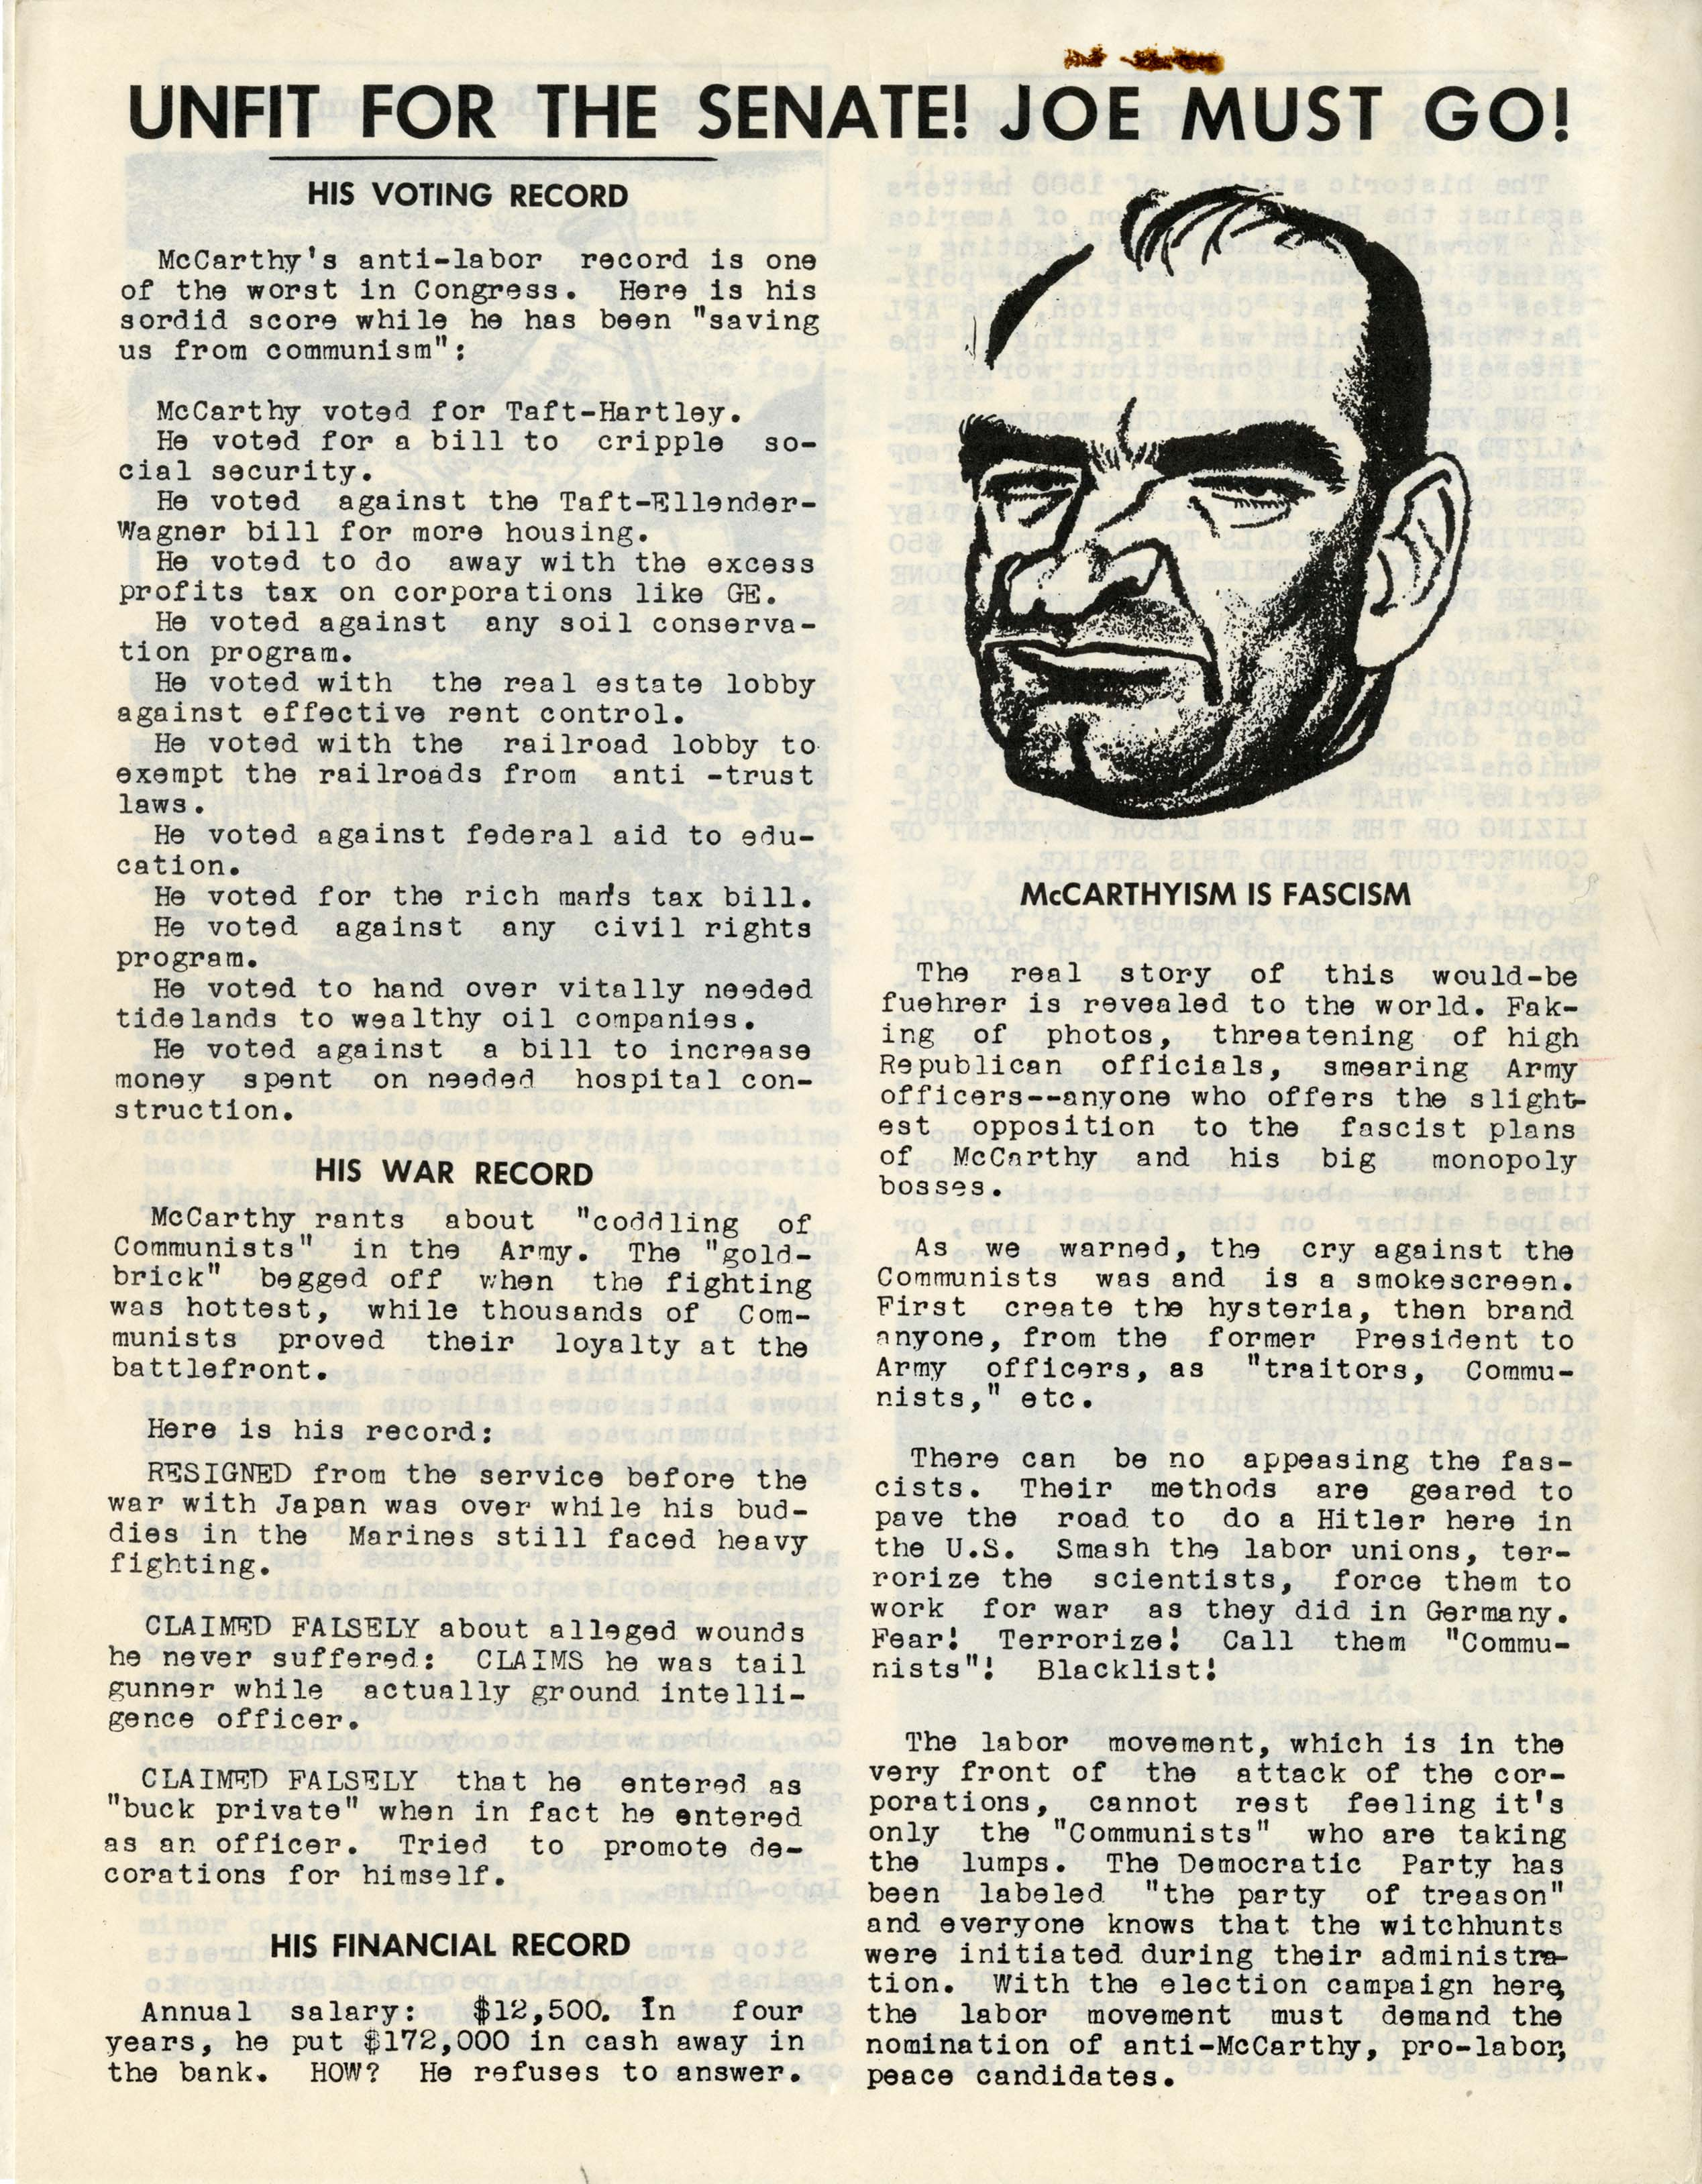 A page from the June 1954 issue of Connecticut Challenge against Joseph McCarthy